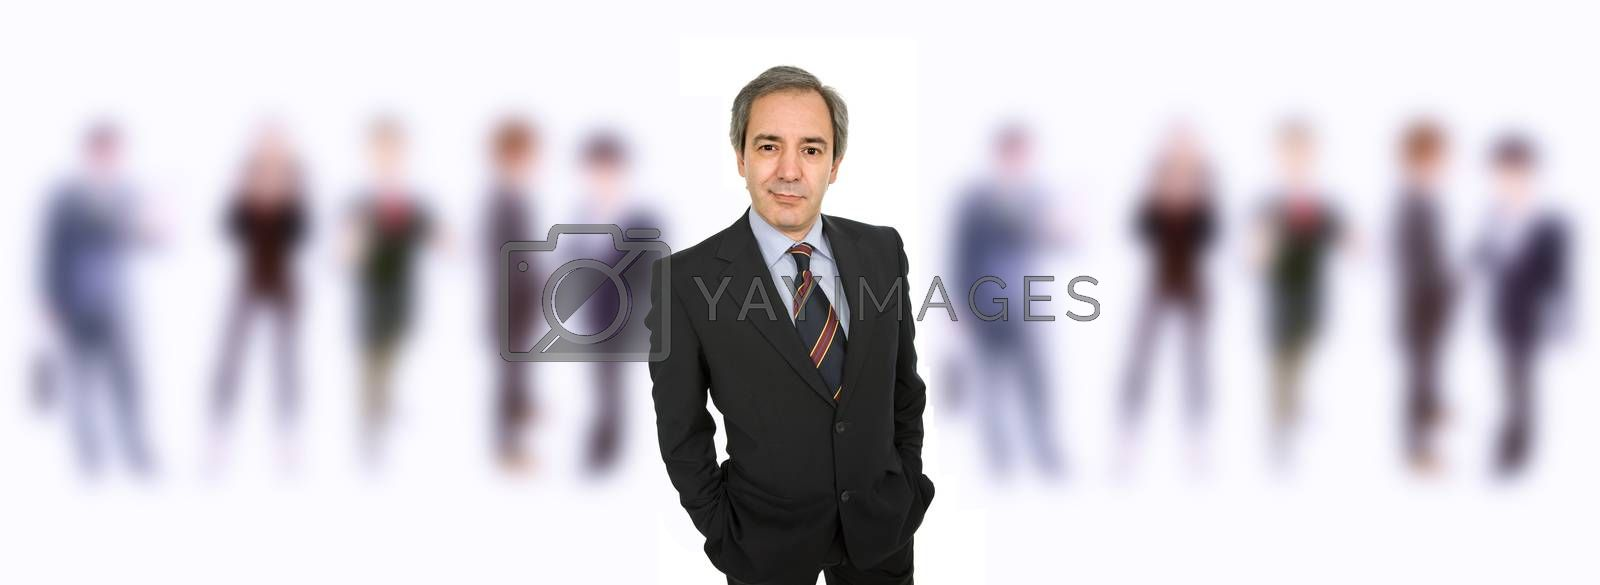 mature business man portrait with some people in the back